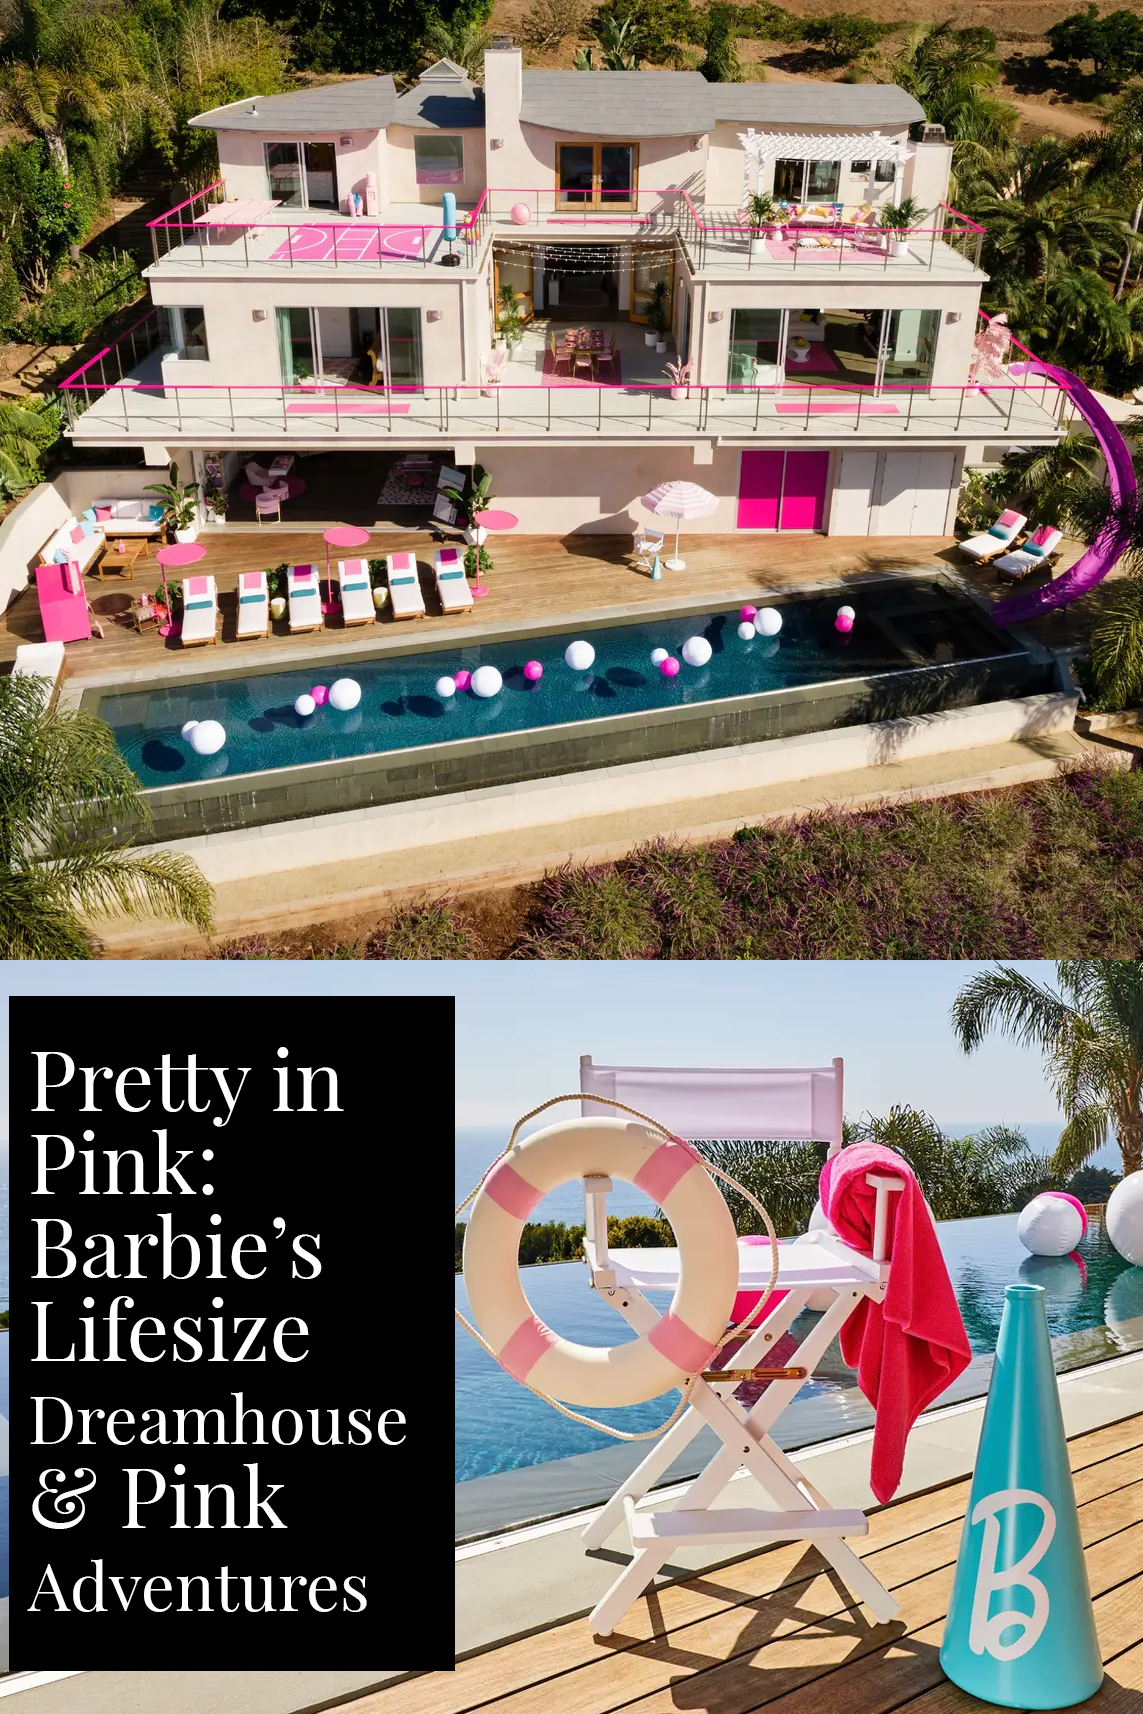 Pretty in Pink: Barbie's Lifesize Dreamhouse and Pink Adventures